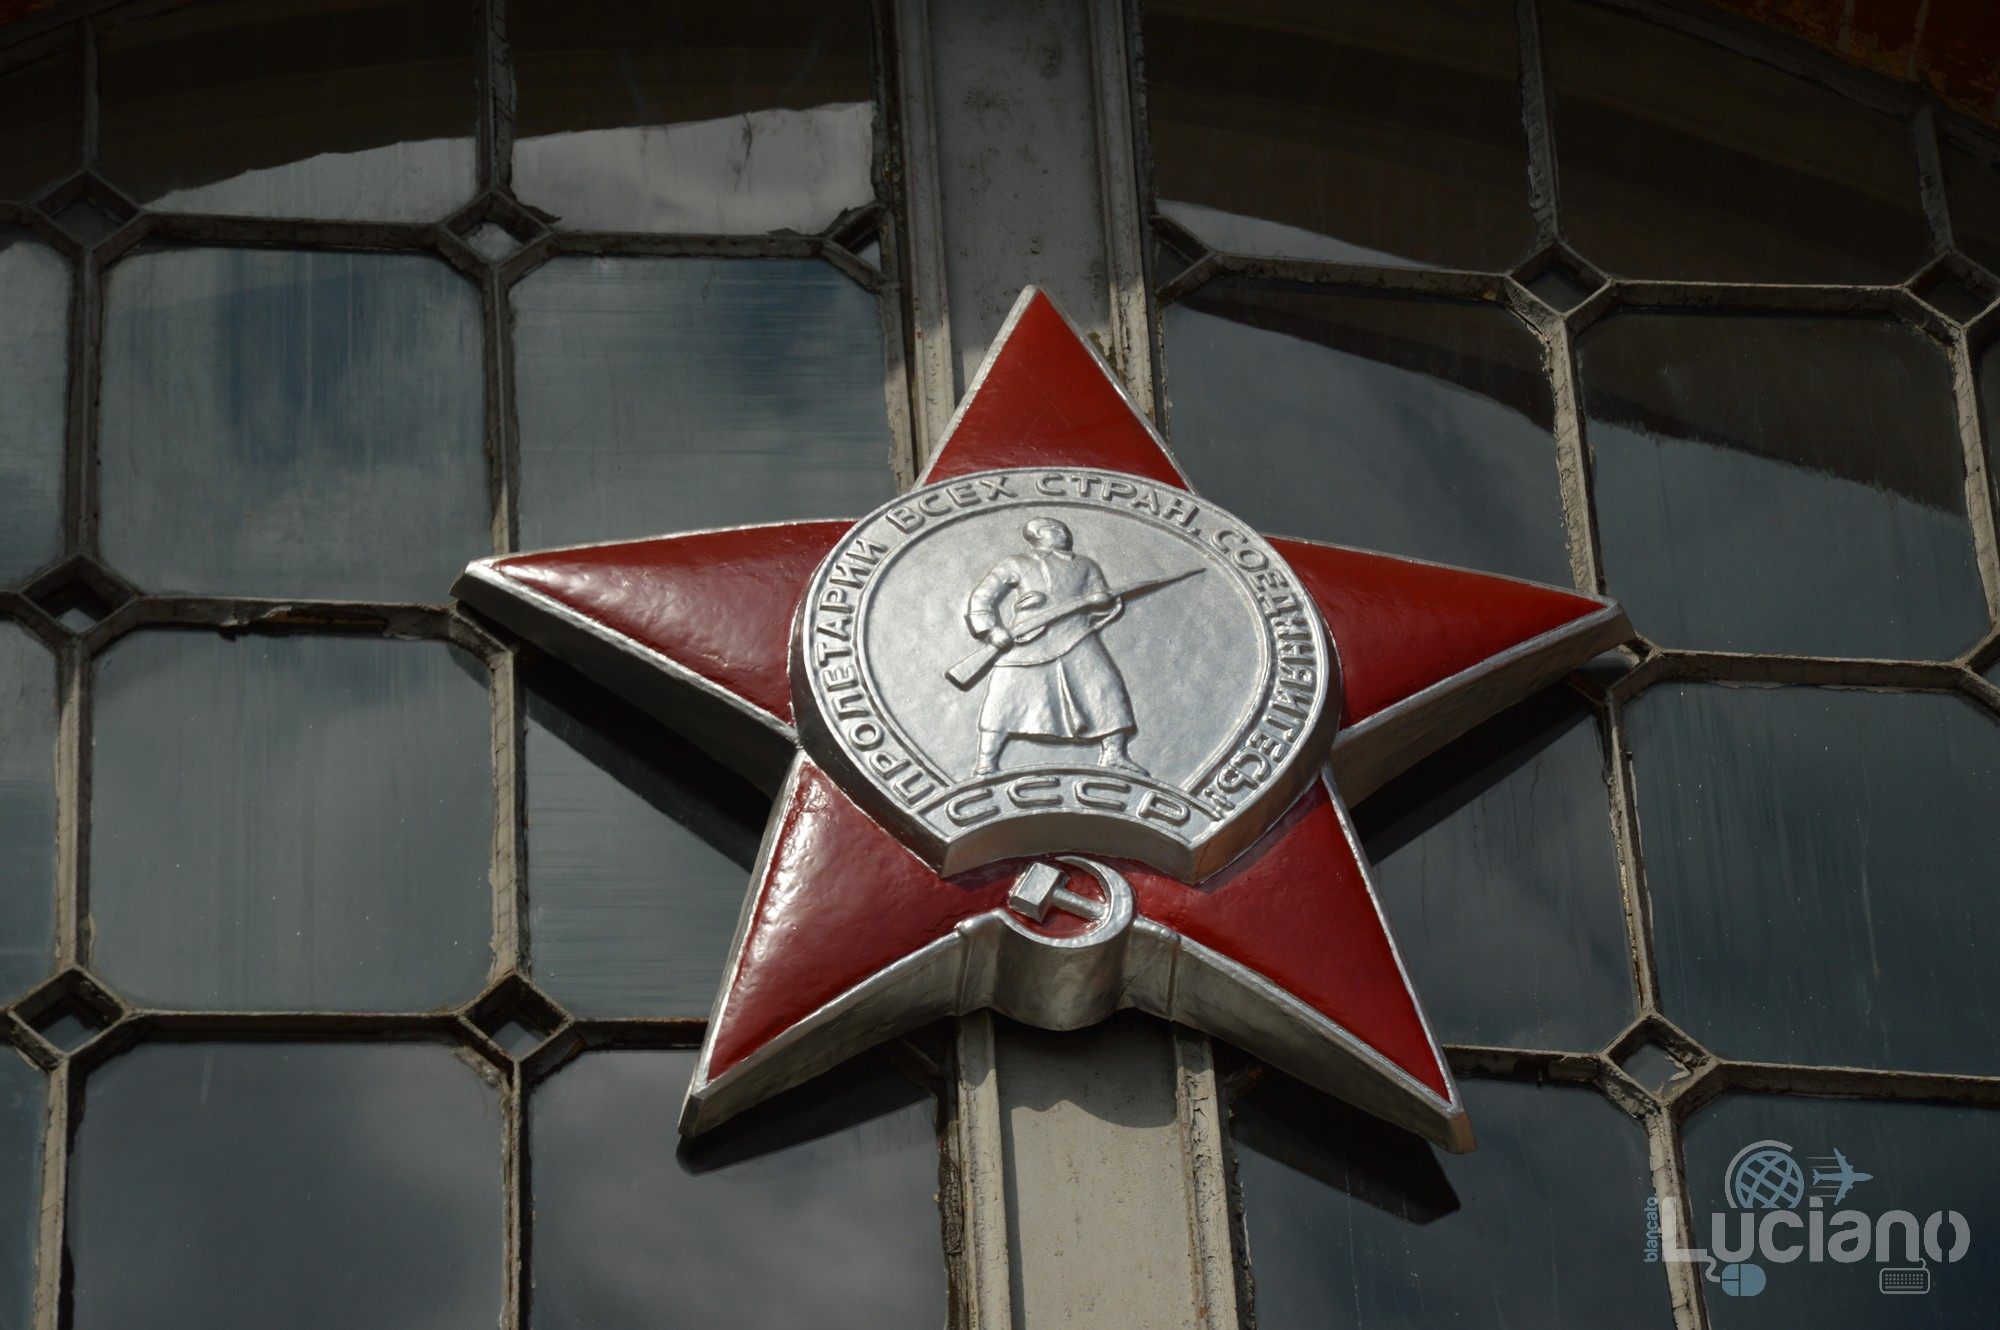 Military-Historical-Museum-of-Artillery-Engineer-and-Signal-Corps-St-Petersburg-Russia-Luciano-Blancato- (95)